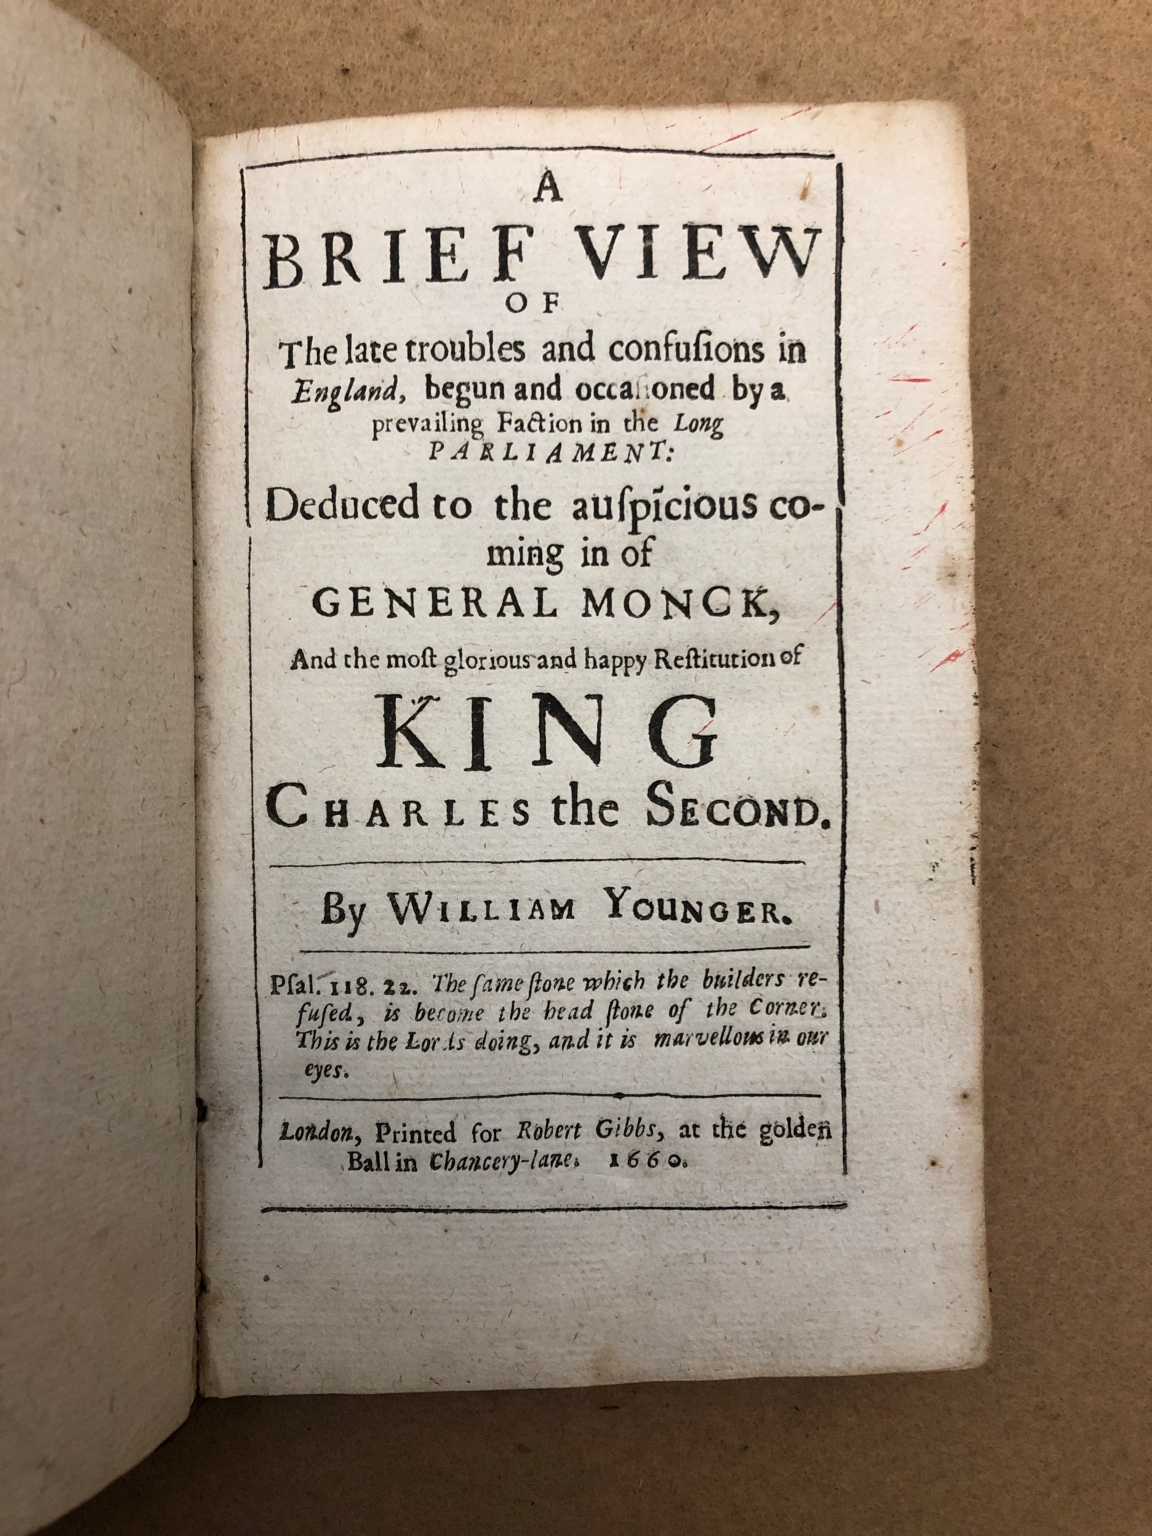 A brief view of the late troubles and confusions in England : begun and occasioned by a prevailing faction in the long Parliament : deduced to the auspĩcious coming in of General Monck : and the most glorious and happy restitution of King Charles the Second / by William Younger.